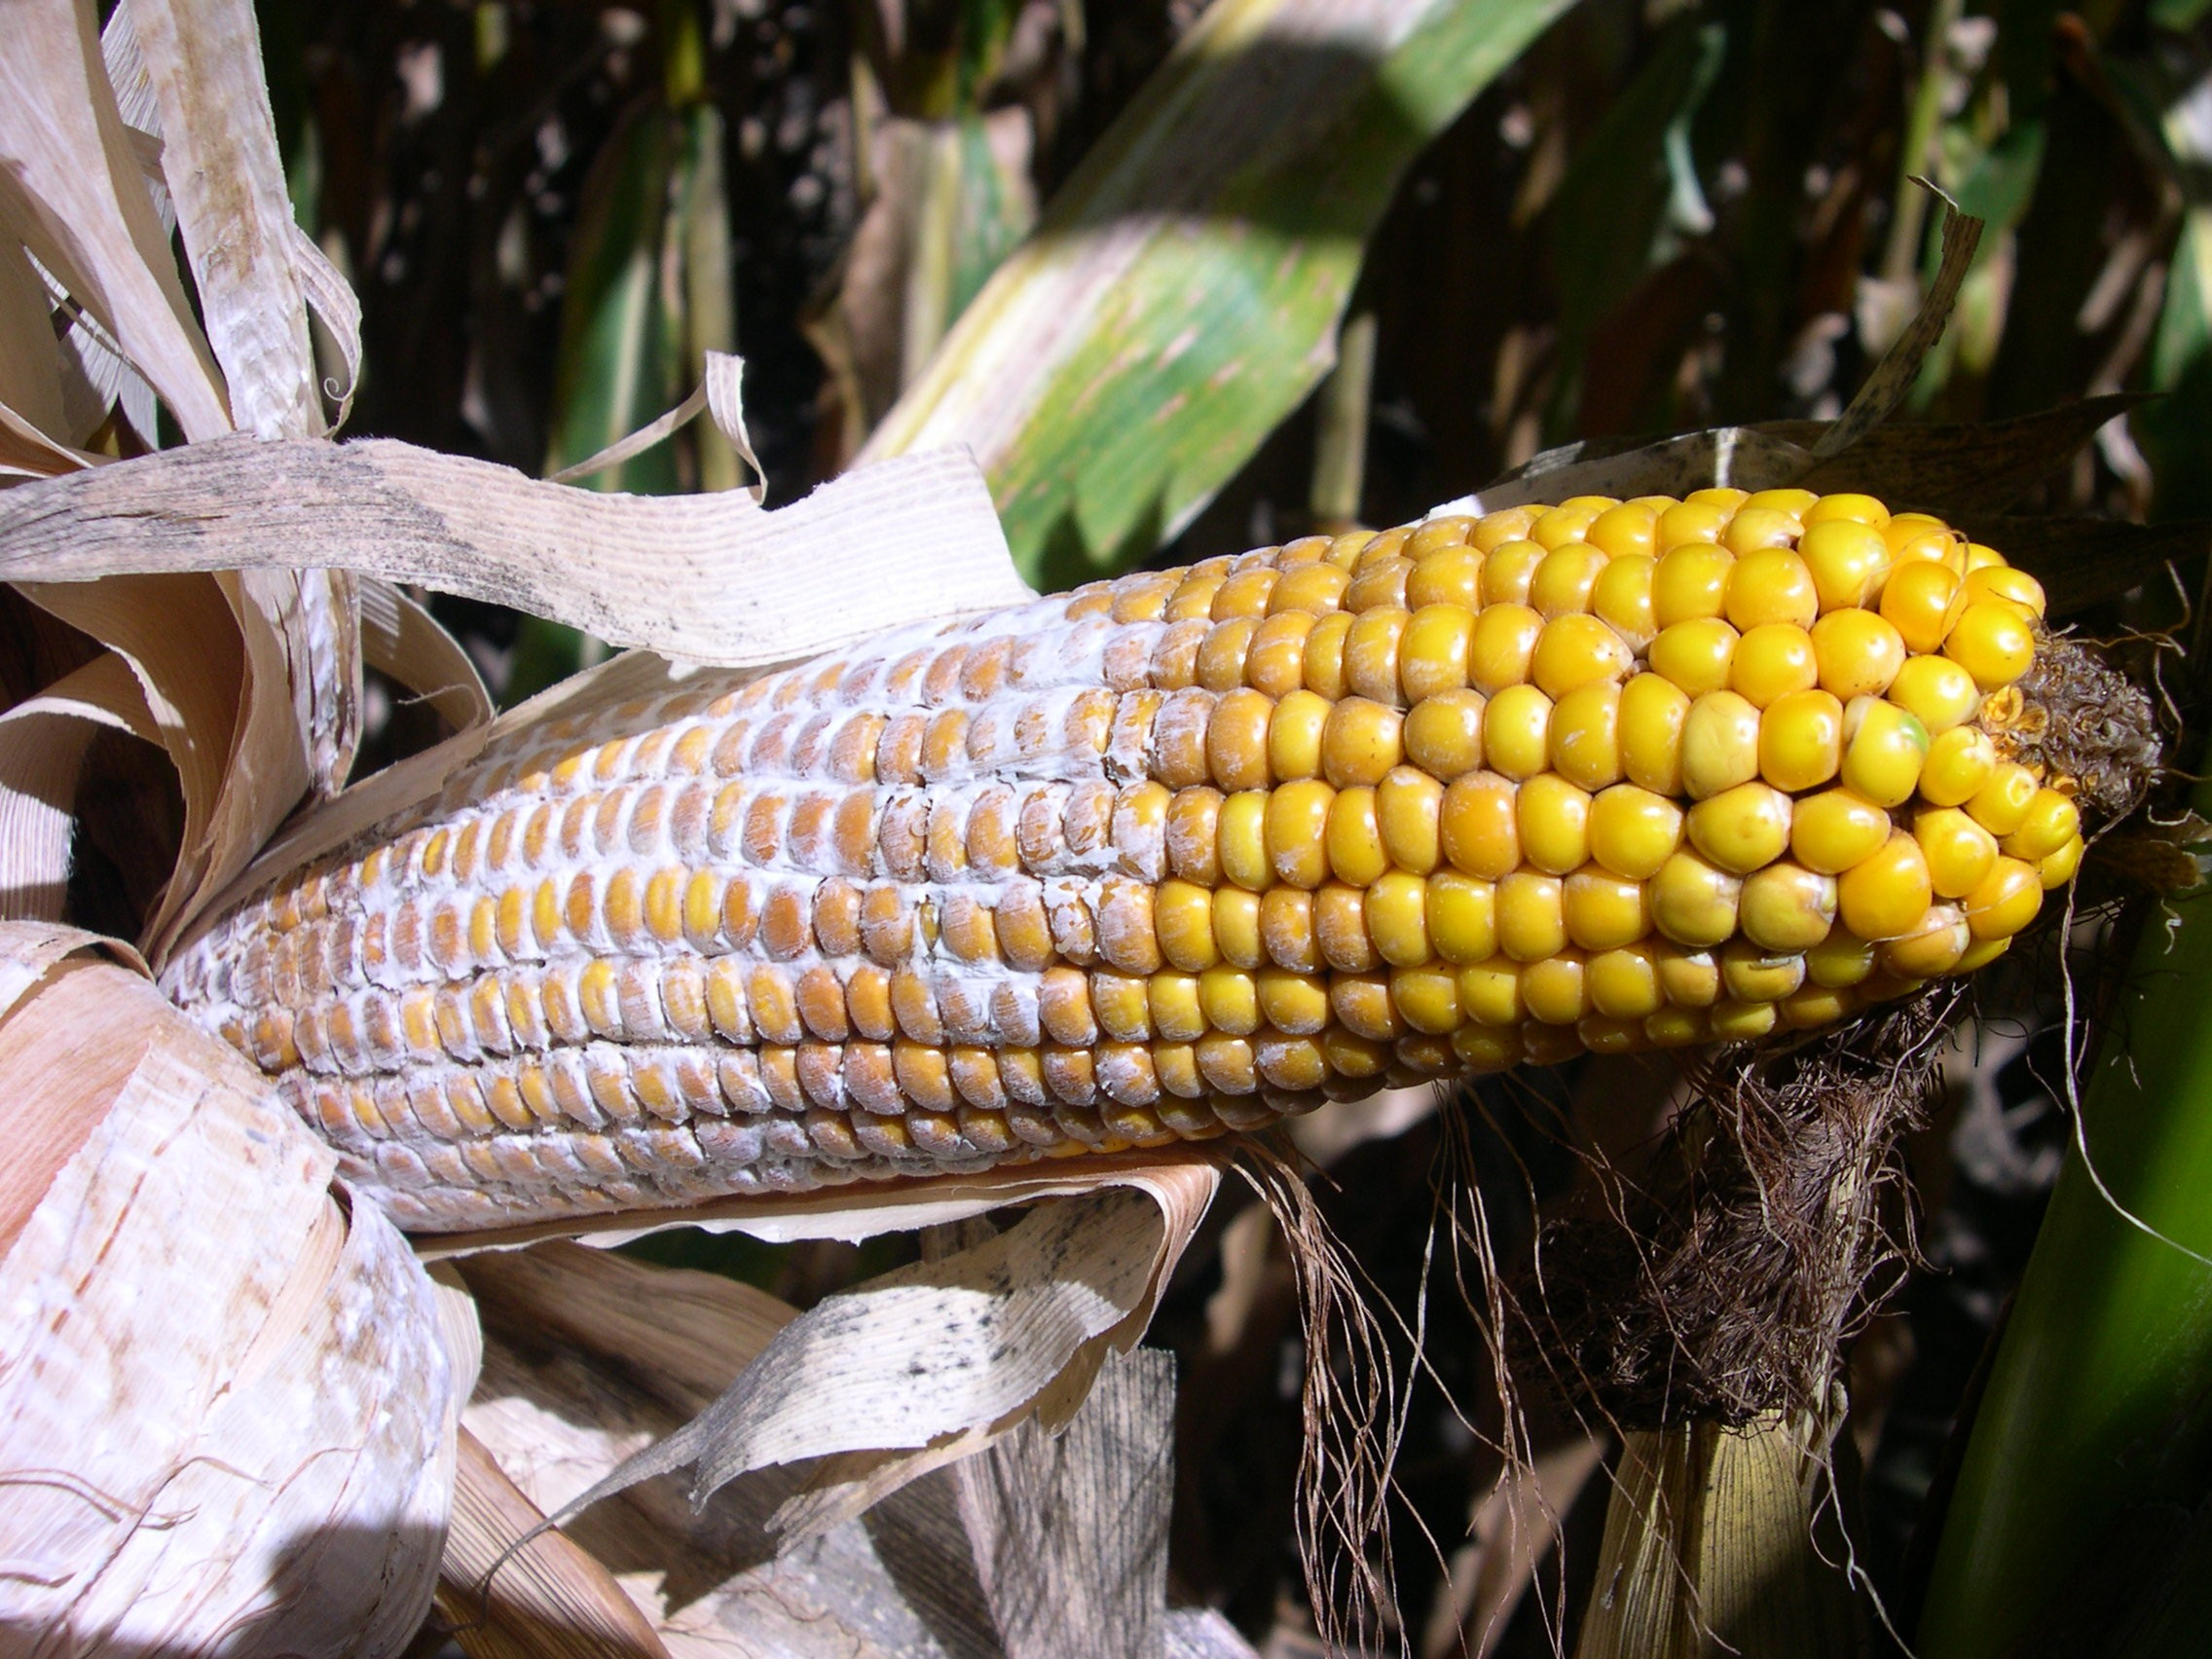 Diplodia ear rot appears as white mold growing on corn ears.